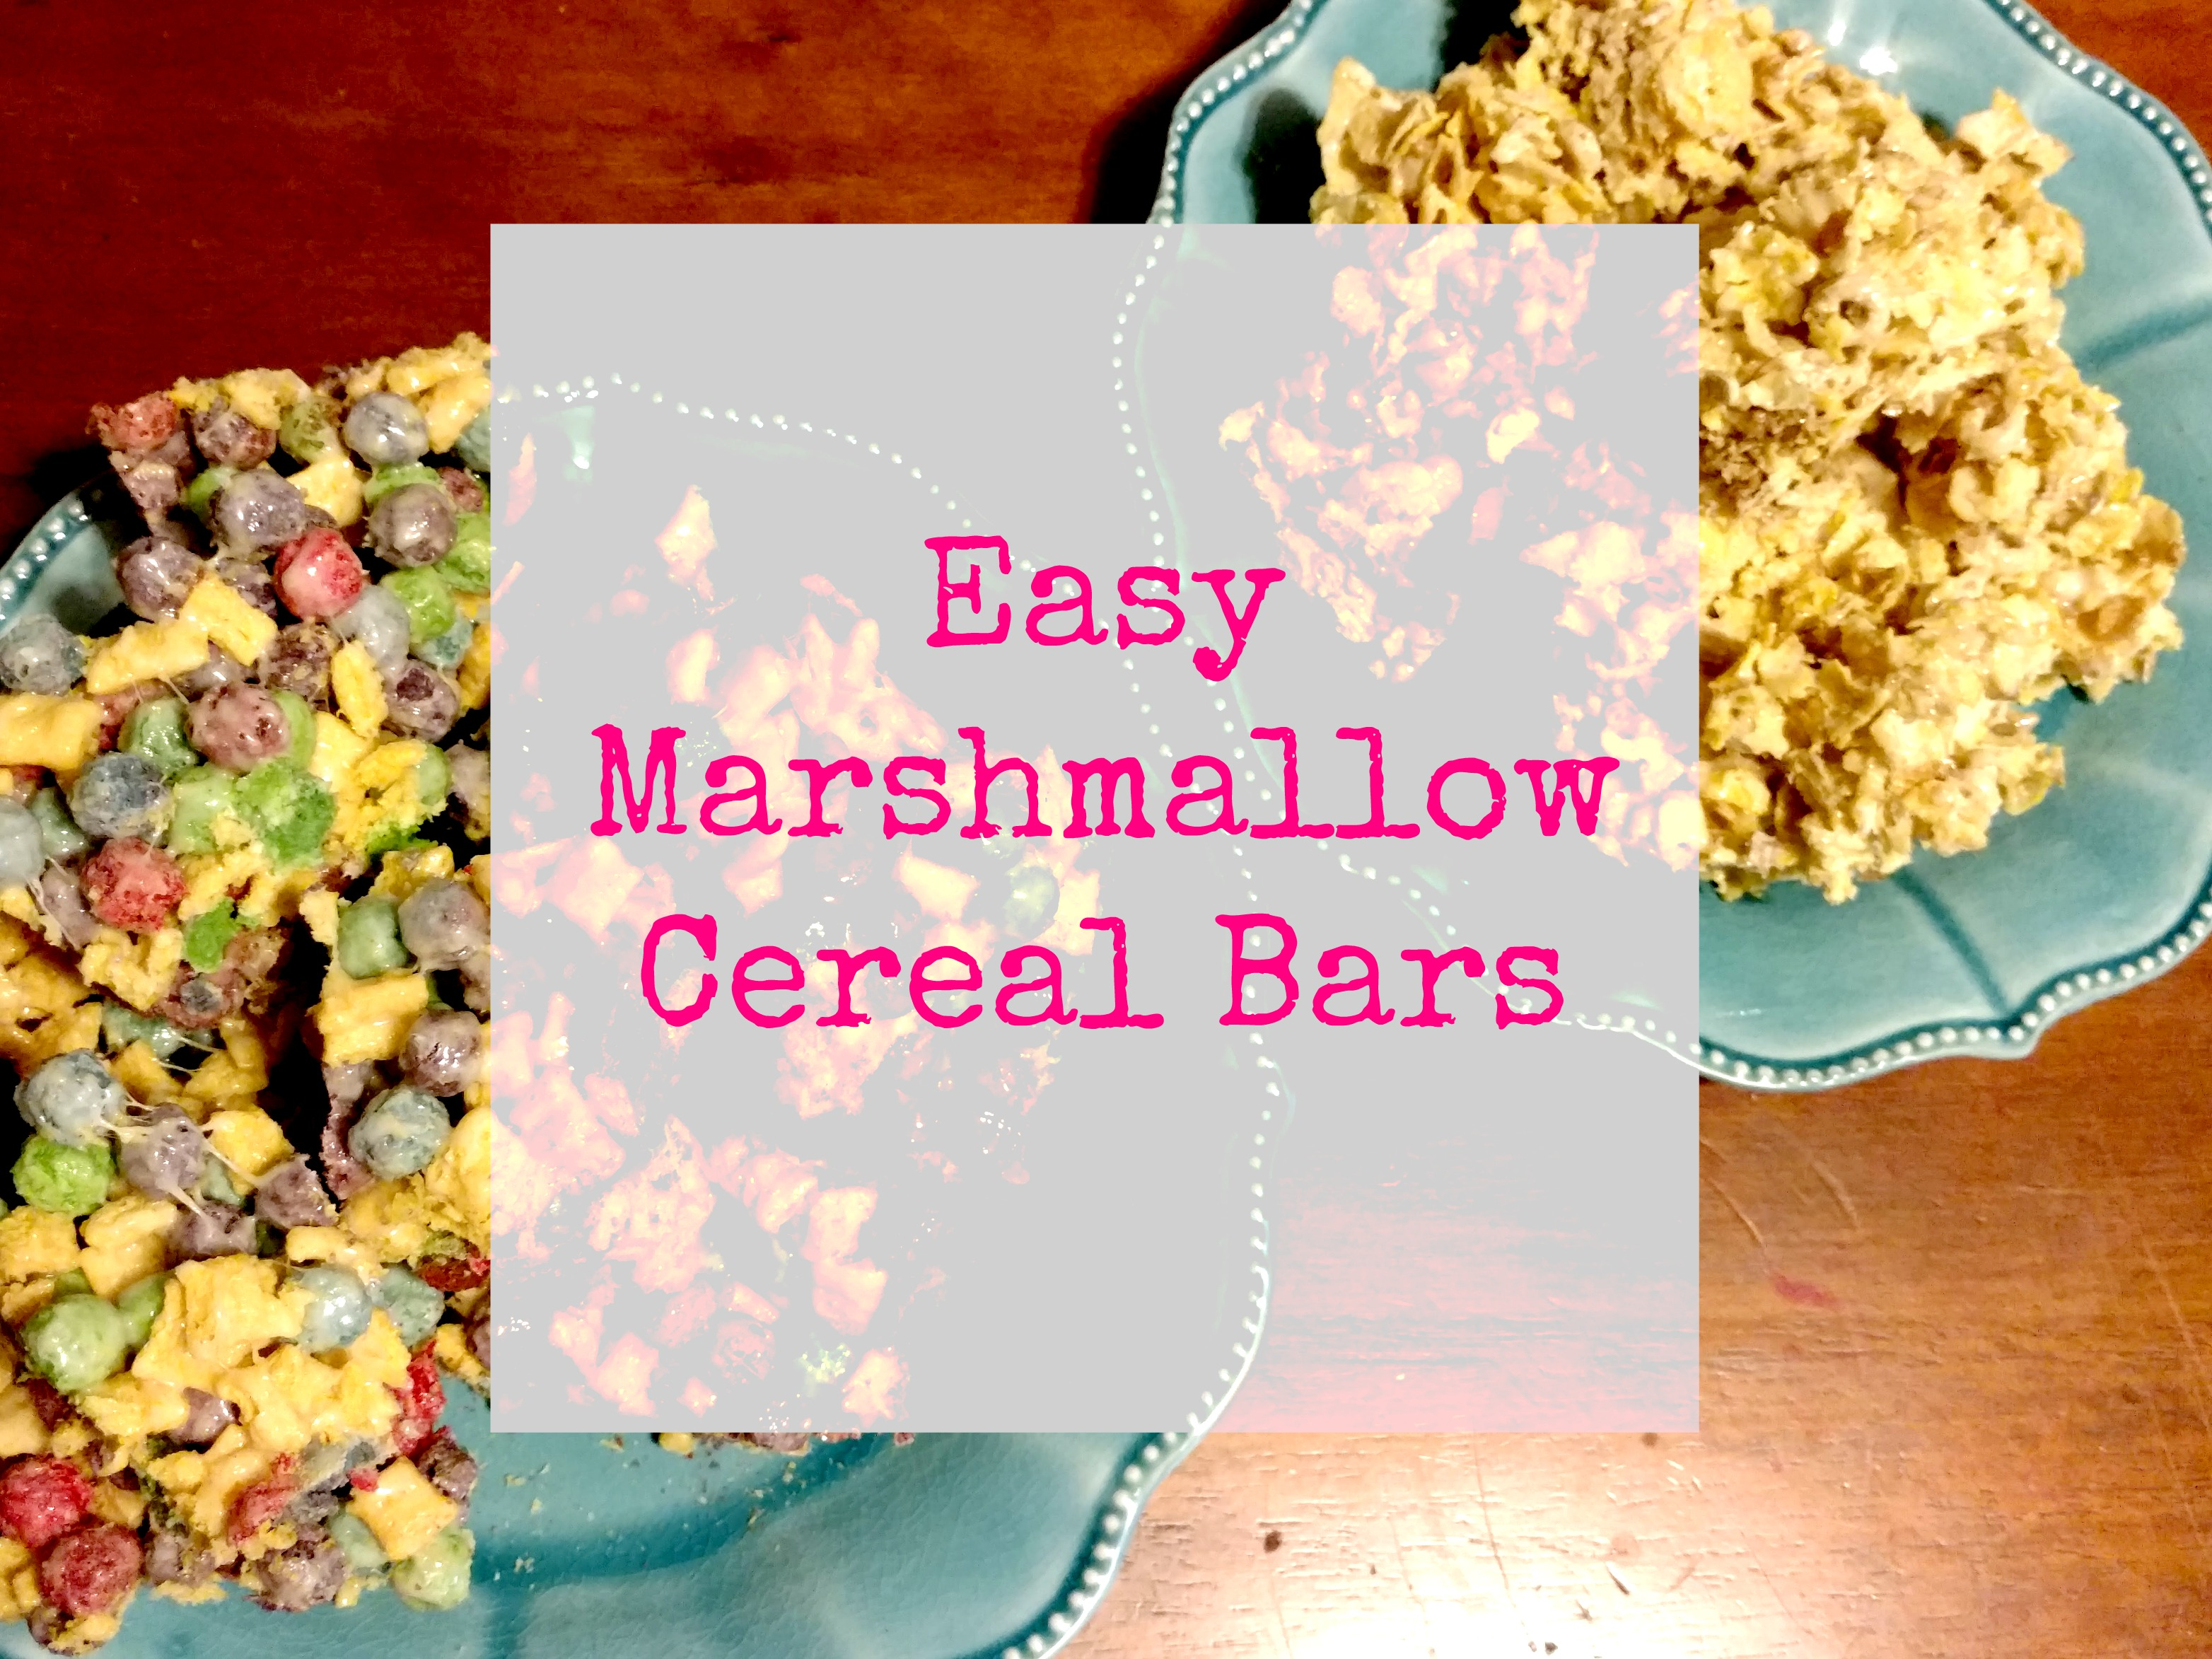 These marshmallow cereal bars are easy to make. Only 4 ingredients. YUM! #CerealAnytime